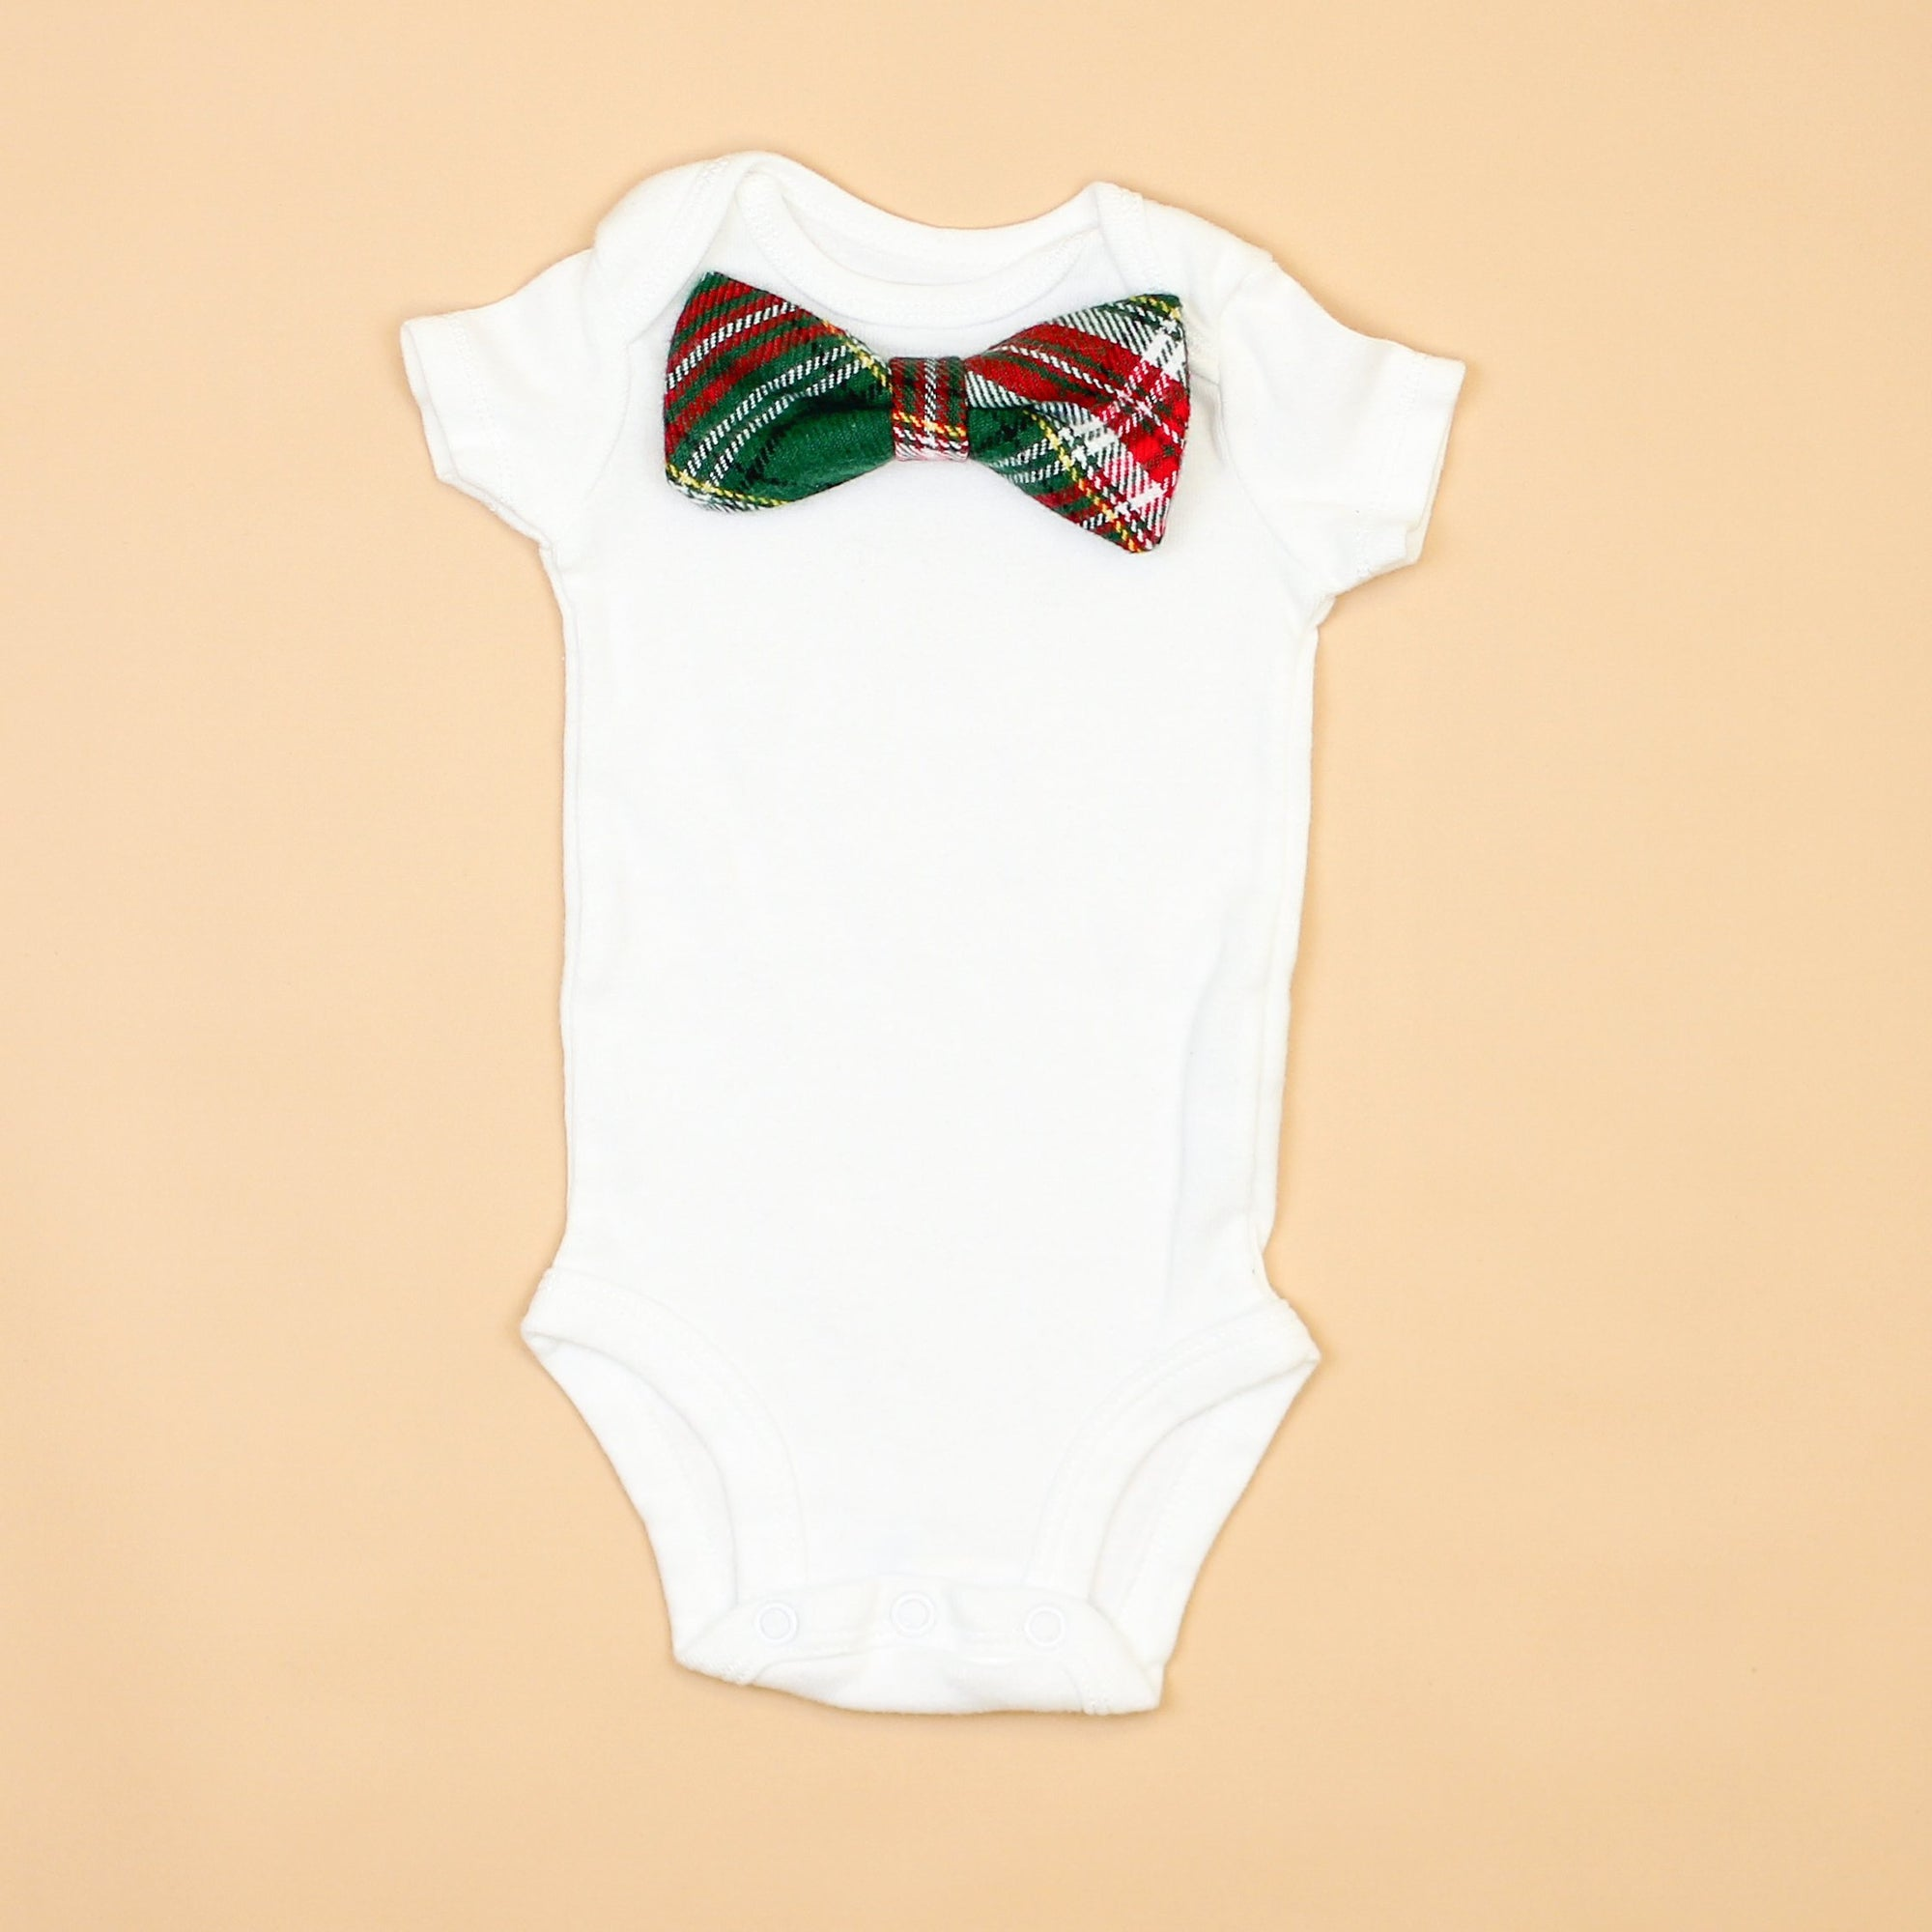 Cuddle Sleep Dream Oh Snap Green/Red Plaid Bowtie Onesie